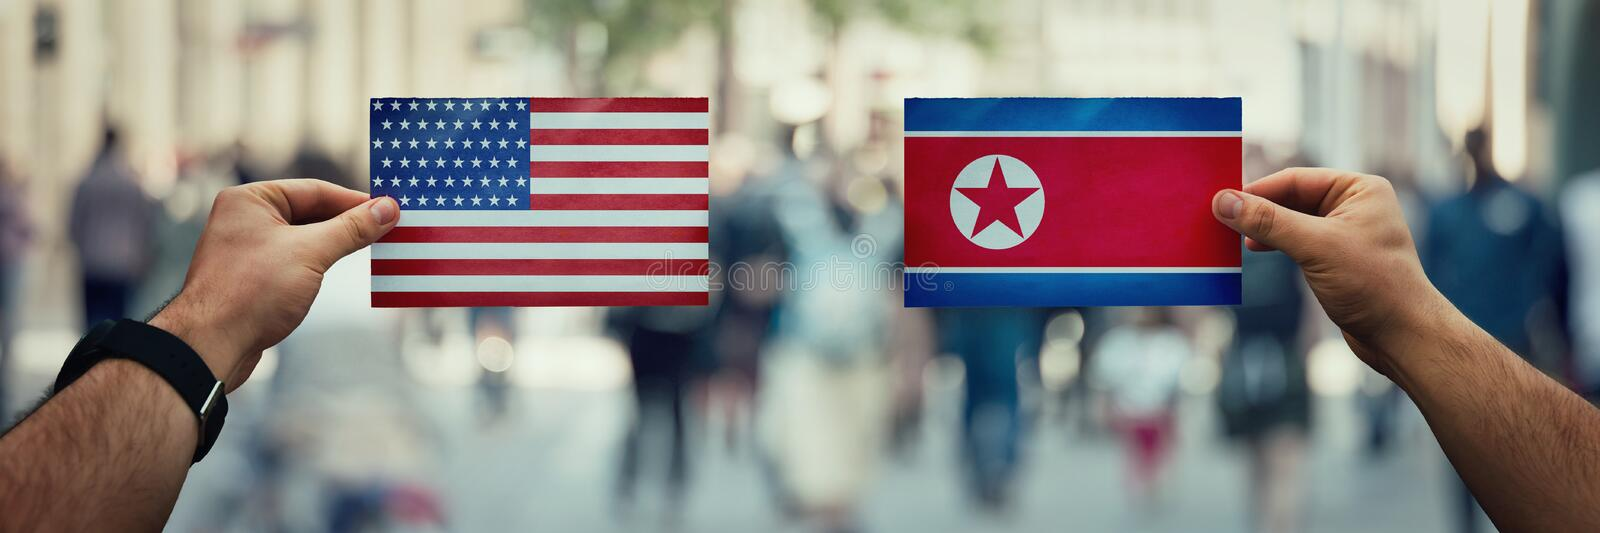 Usa vs korea. Two hands holding different flags, USA vs North Korea Republic on politics arena over crowded street background. Future strategy, relations between stock images